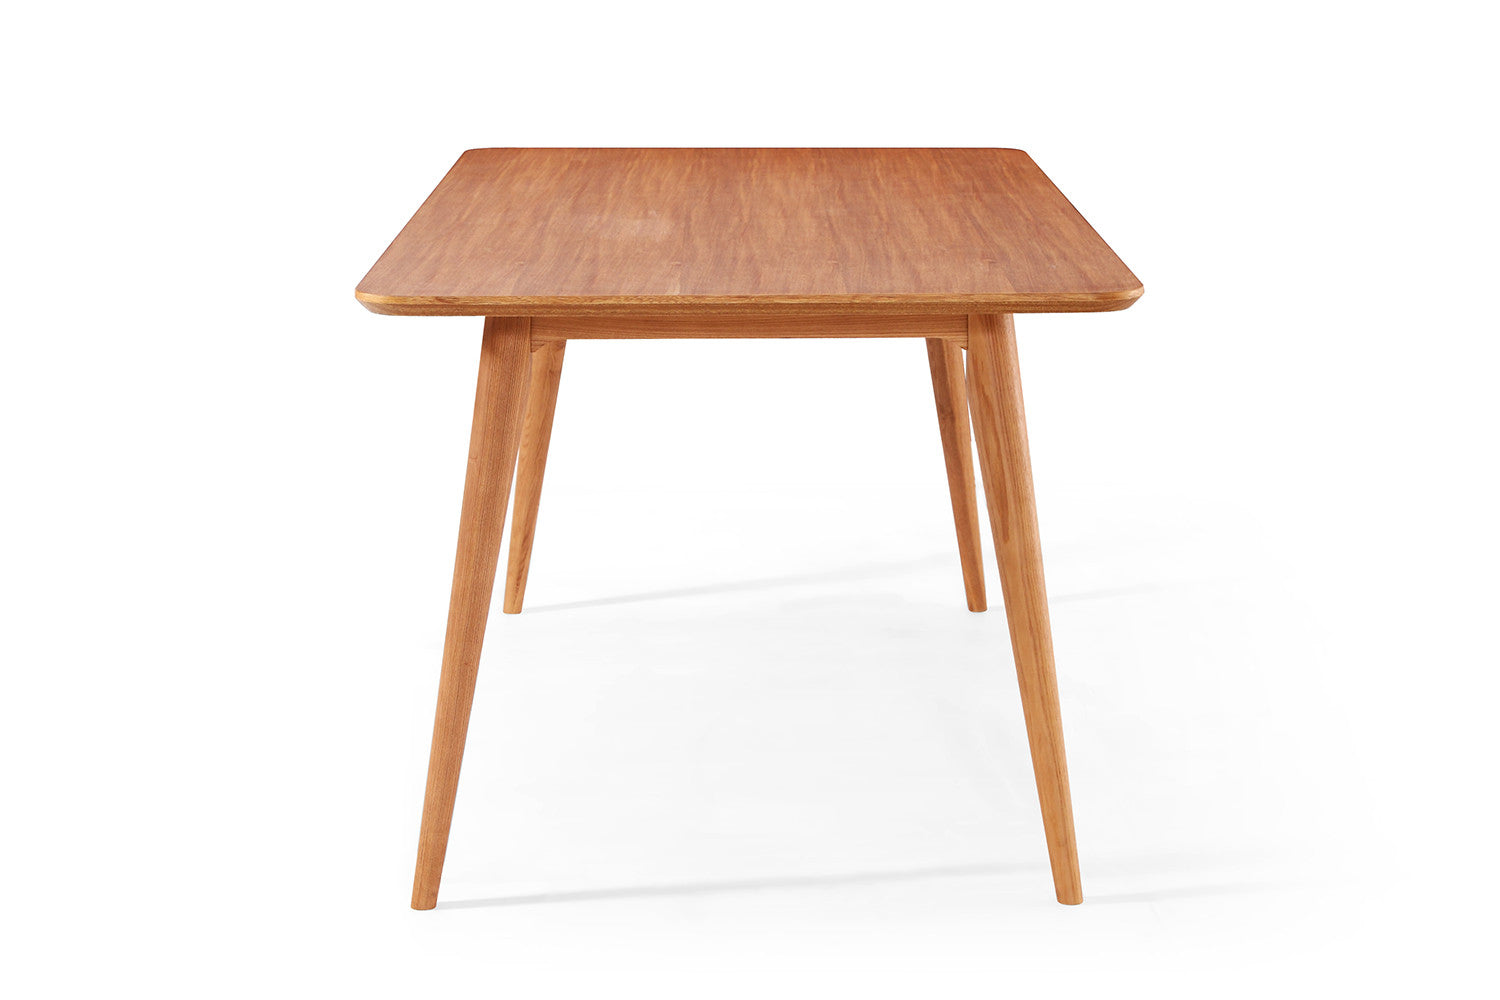 Table de salle manger design en bois julia dewarens for Table salle a manger 2m50